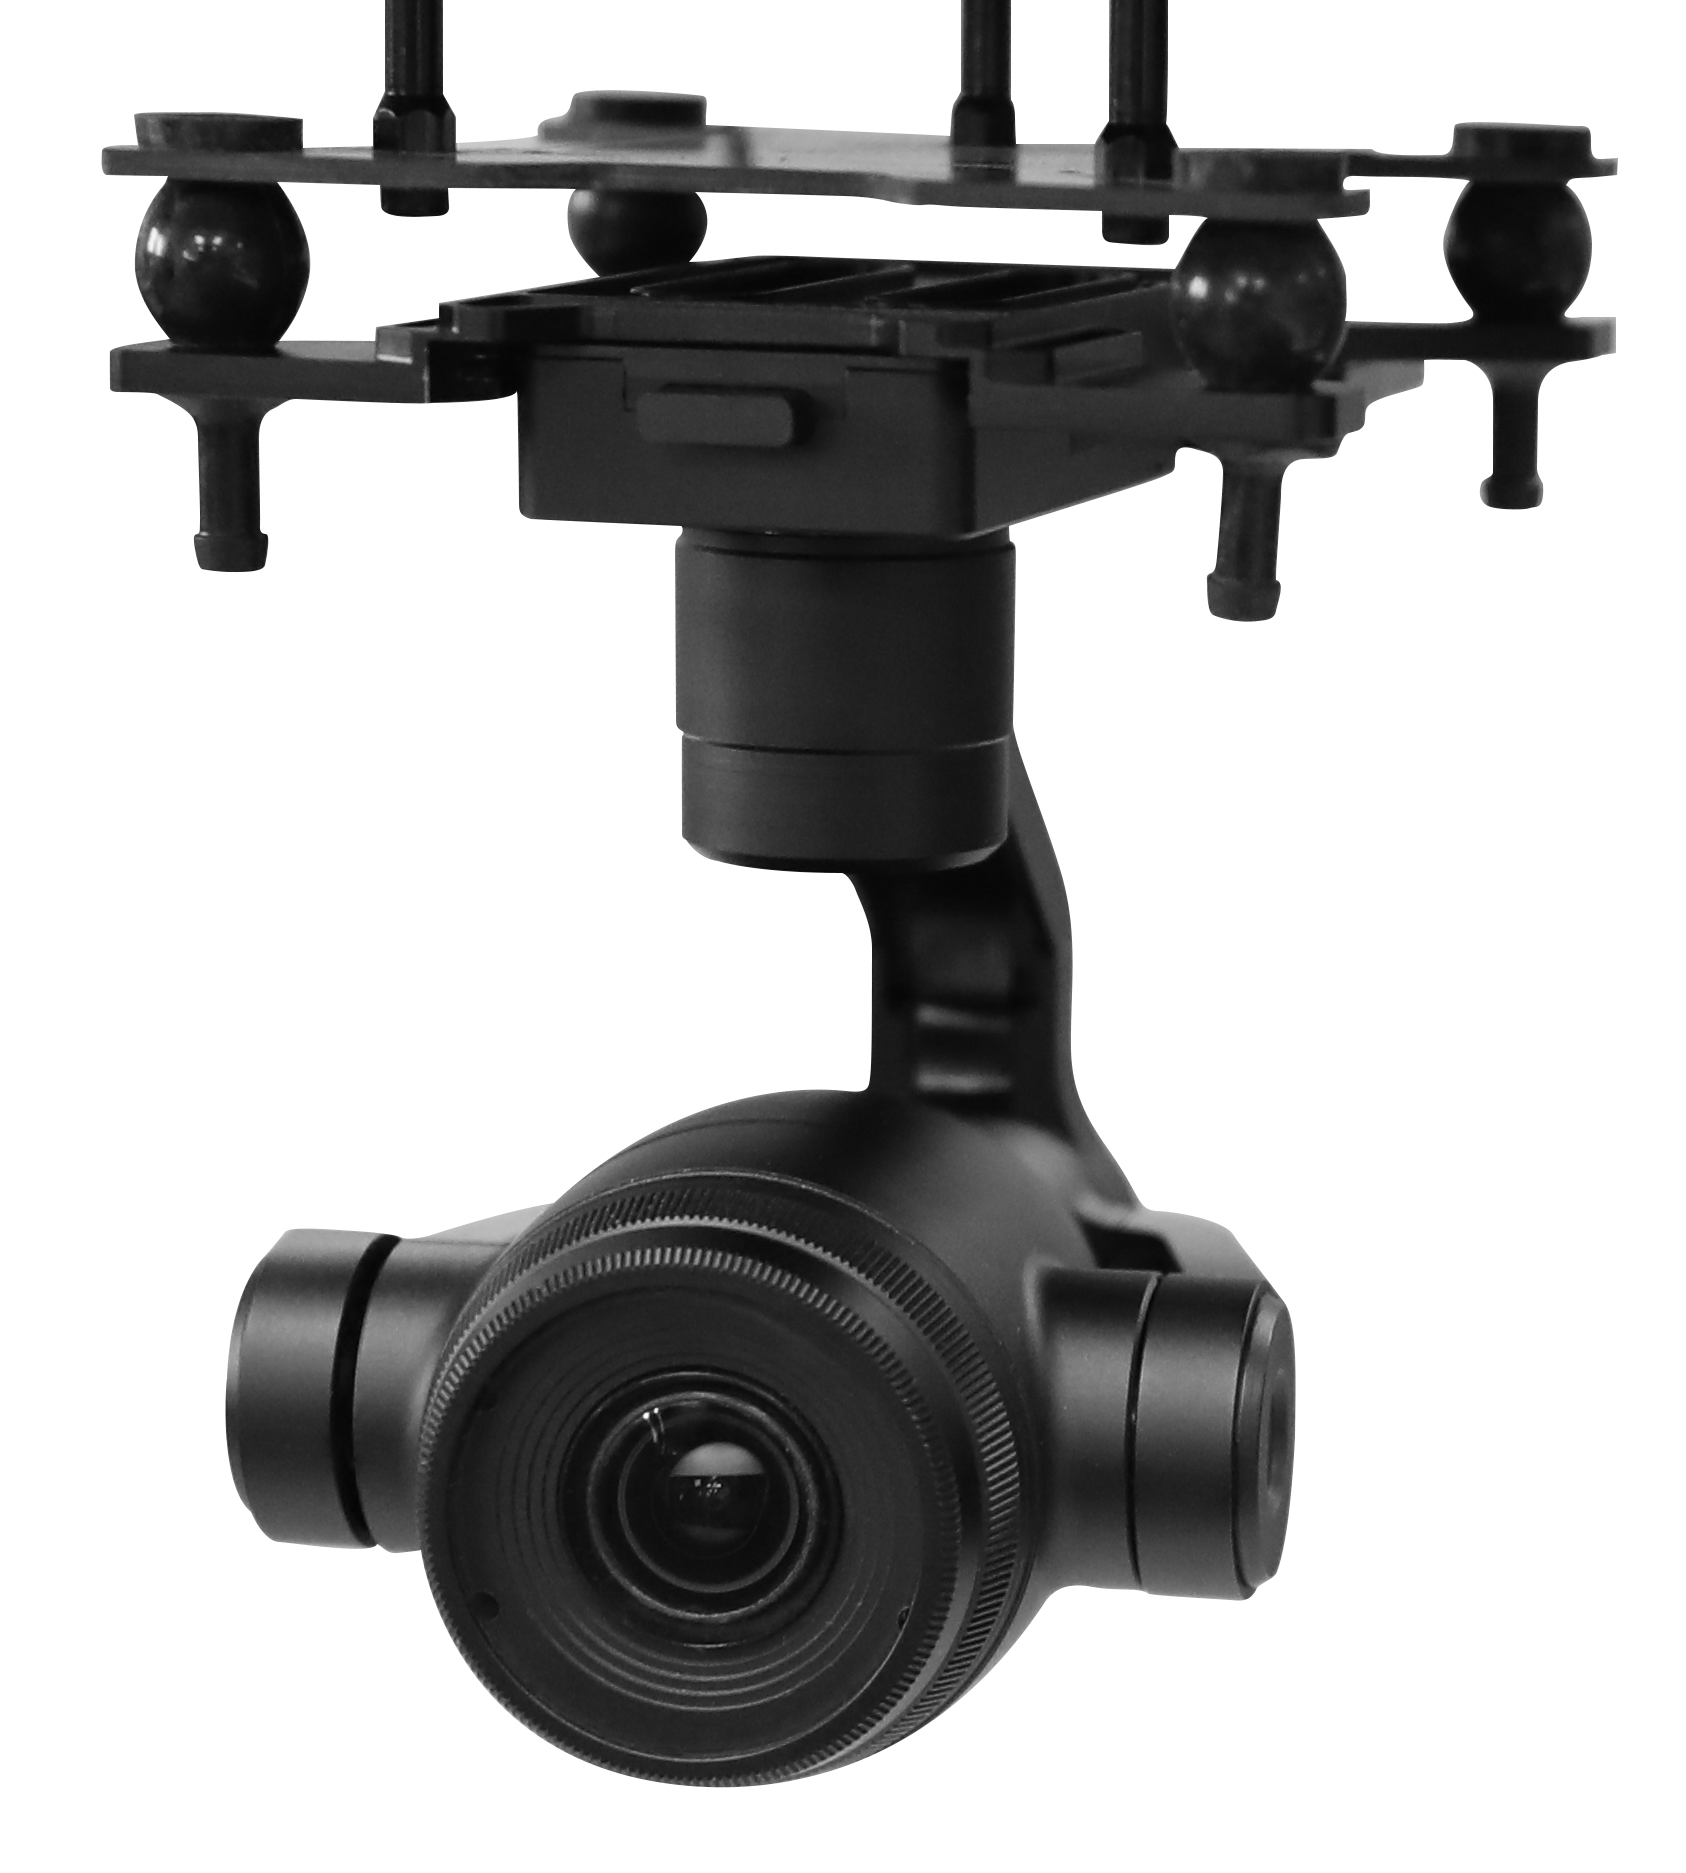 Drone Argus zoom camber with gimbals